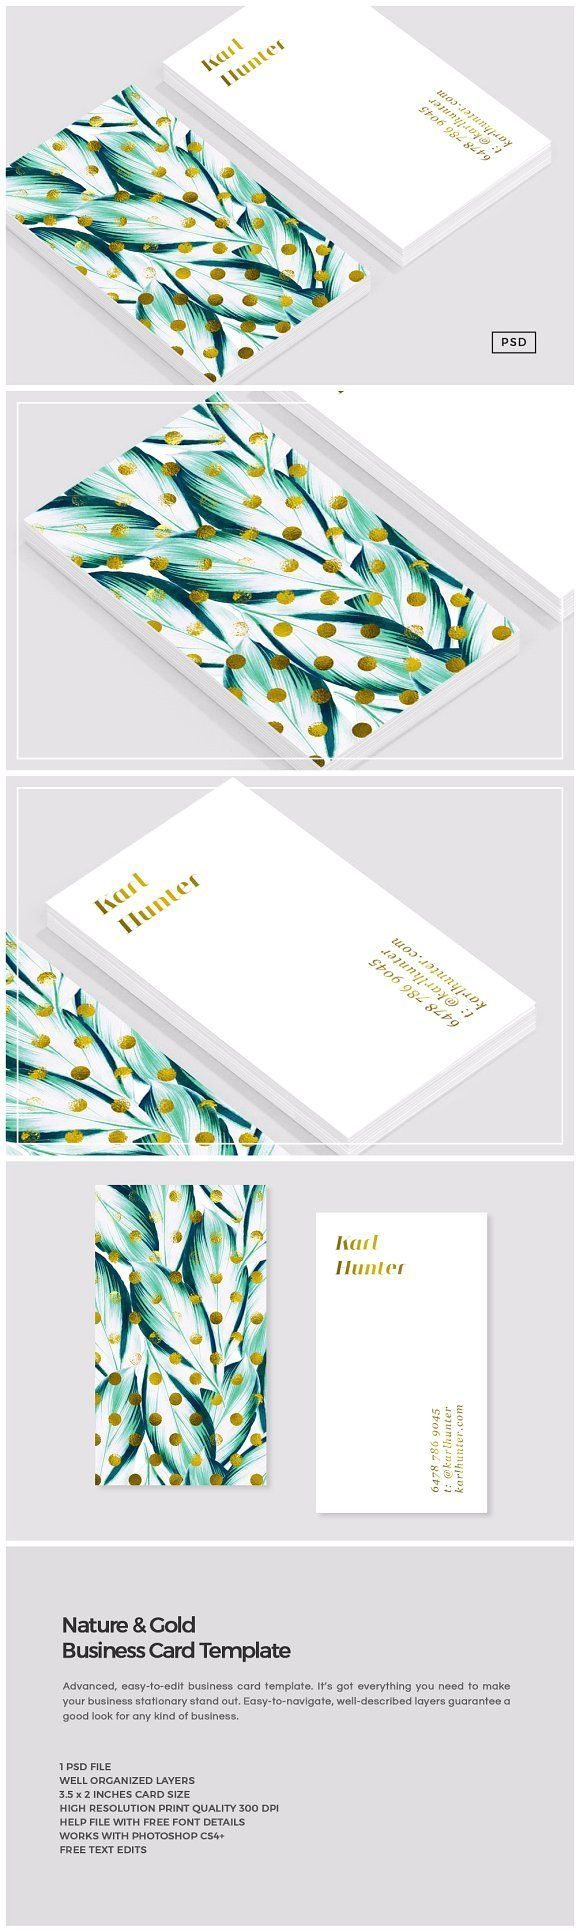 867 best business card designs images on pinterest business cards nature gold business card template by the design label on creative market reheart Gallery